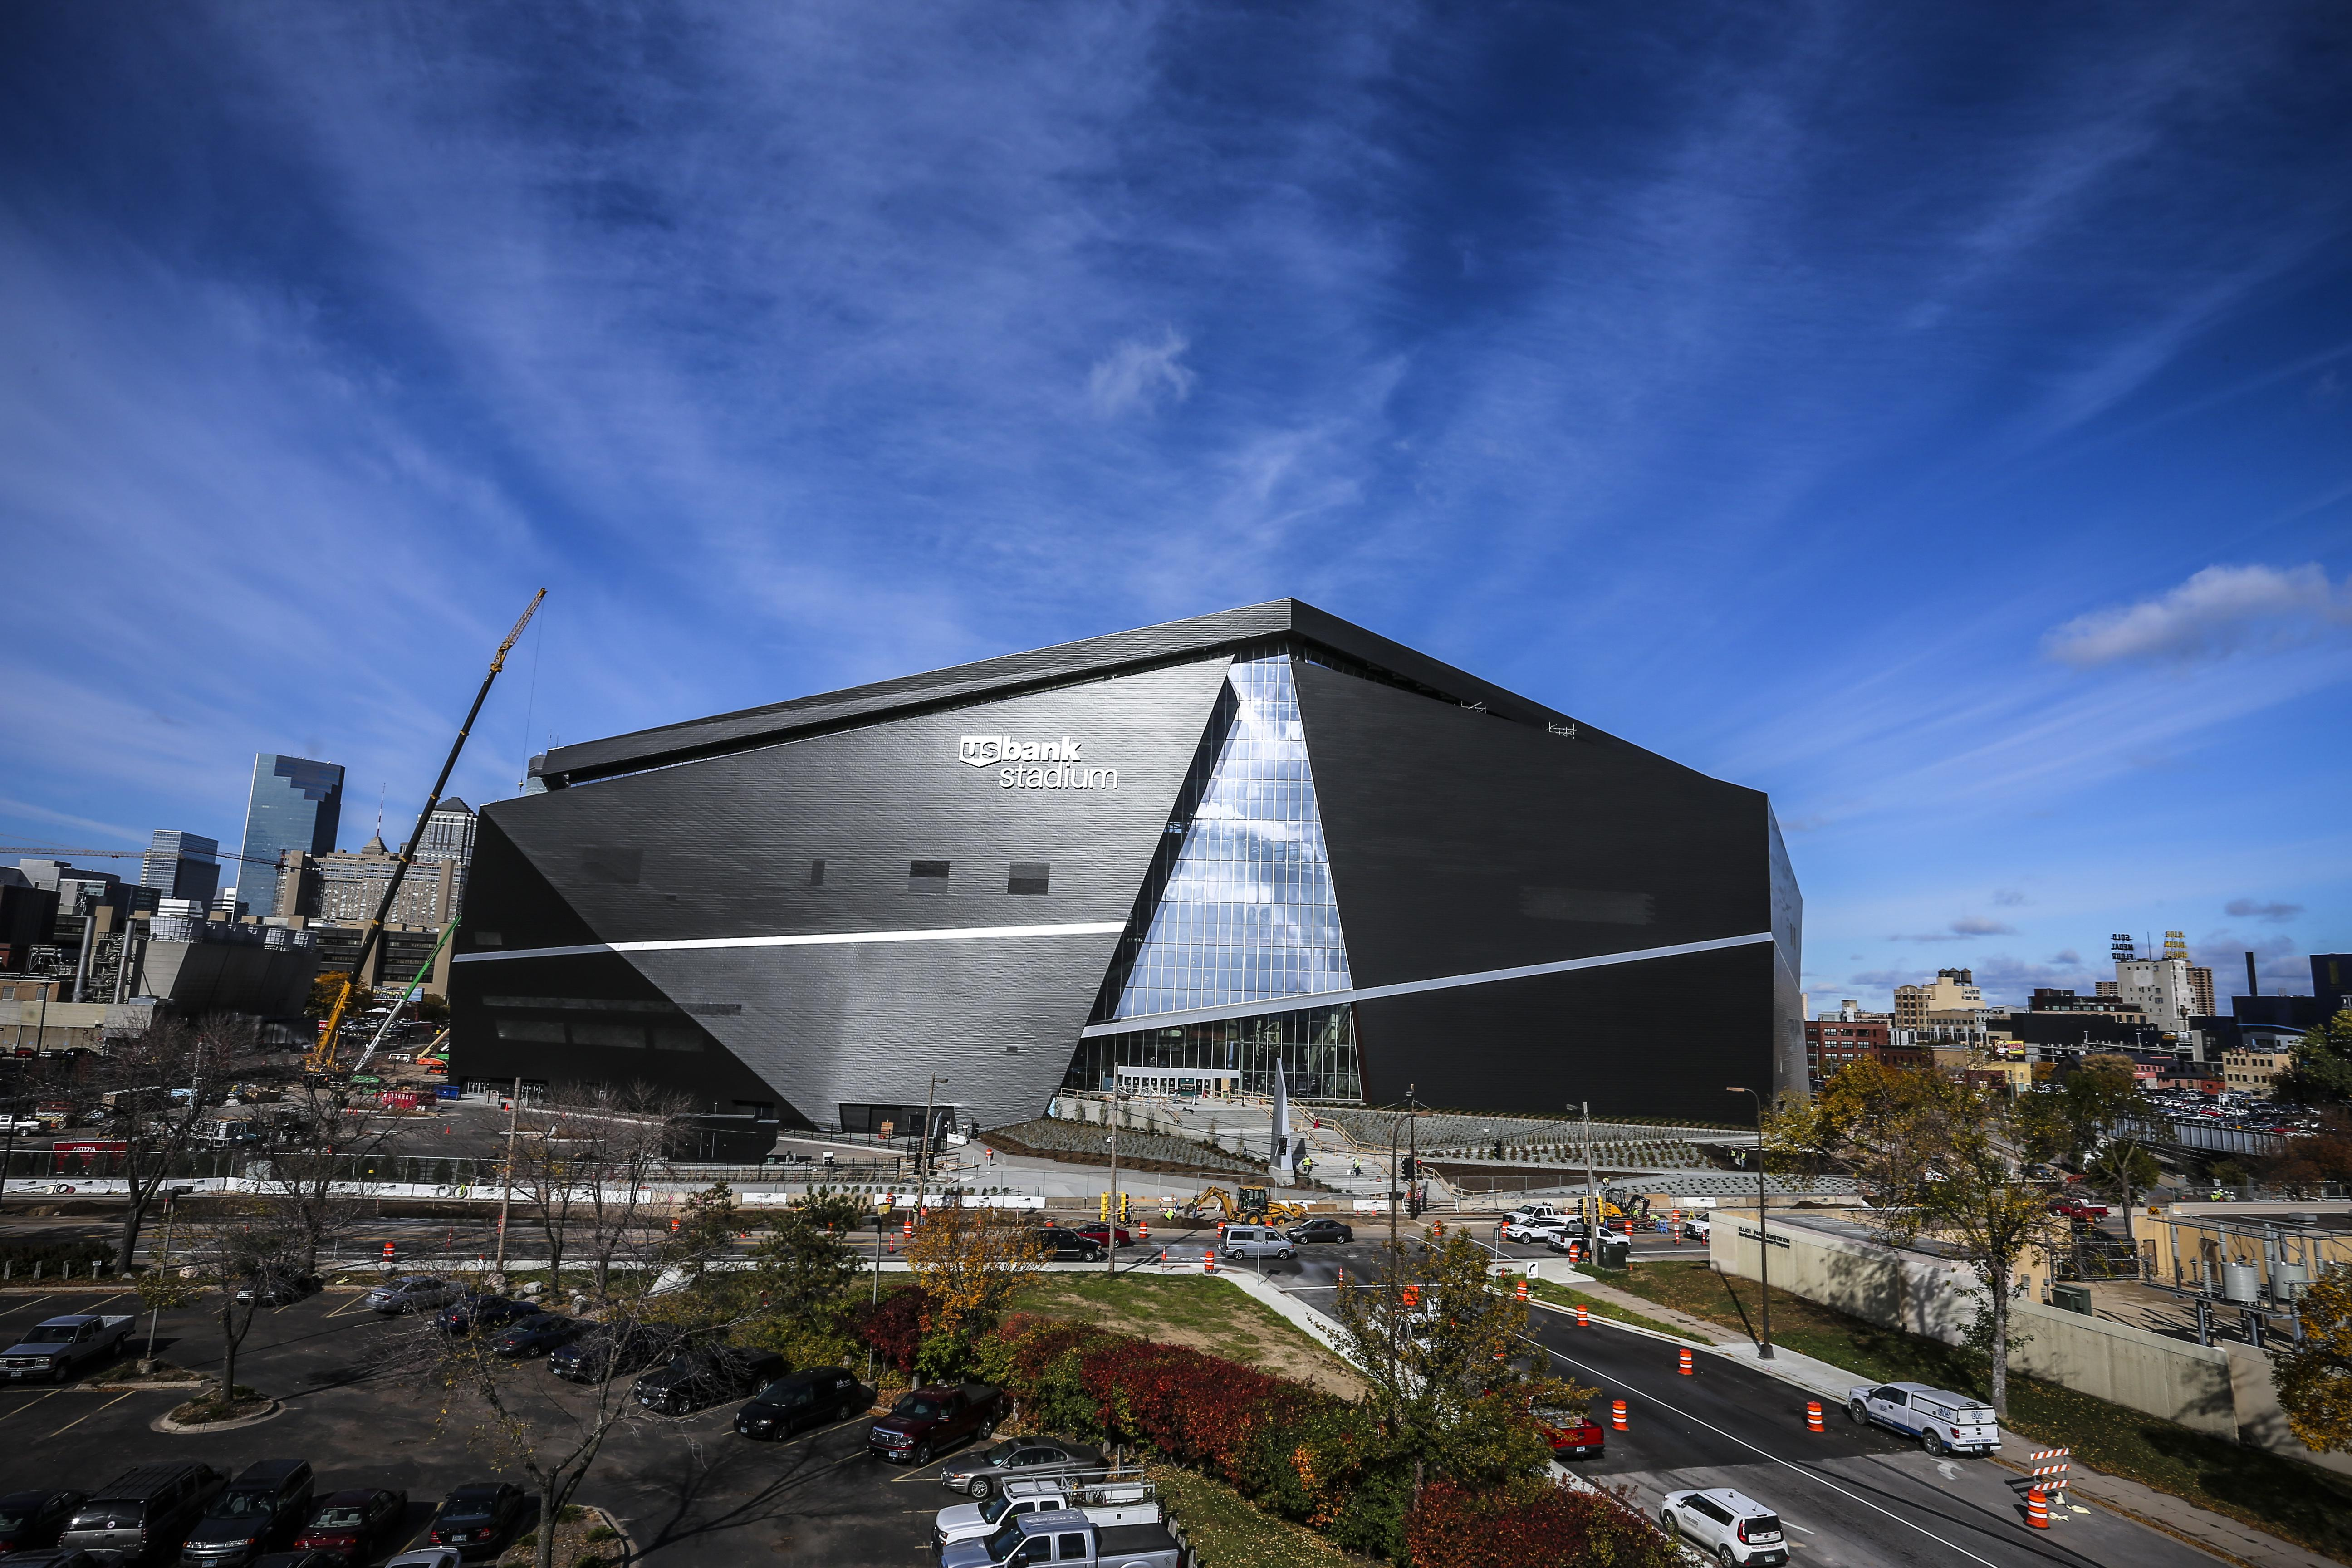 US Bank Stadium will be at the centre of the world when it hosts Super Bowl 52